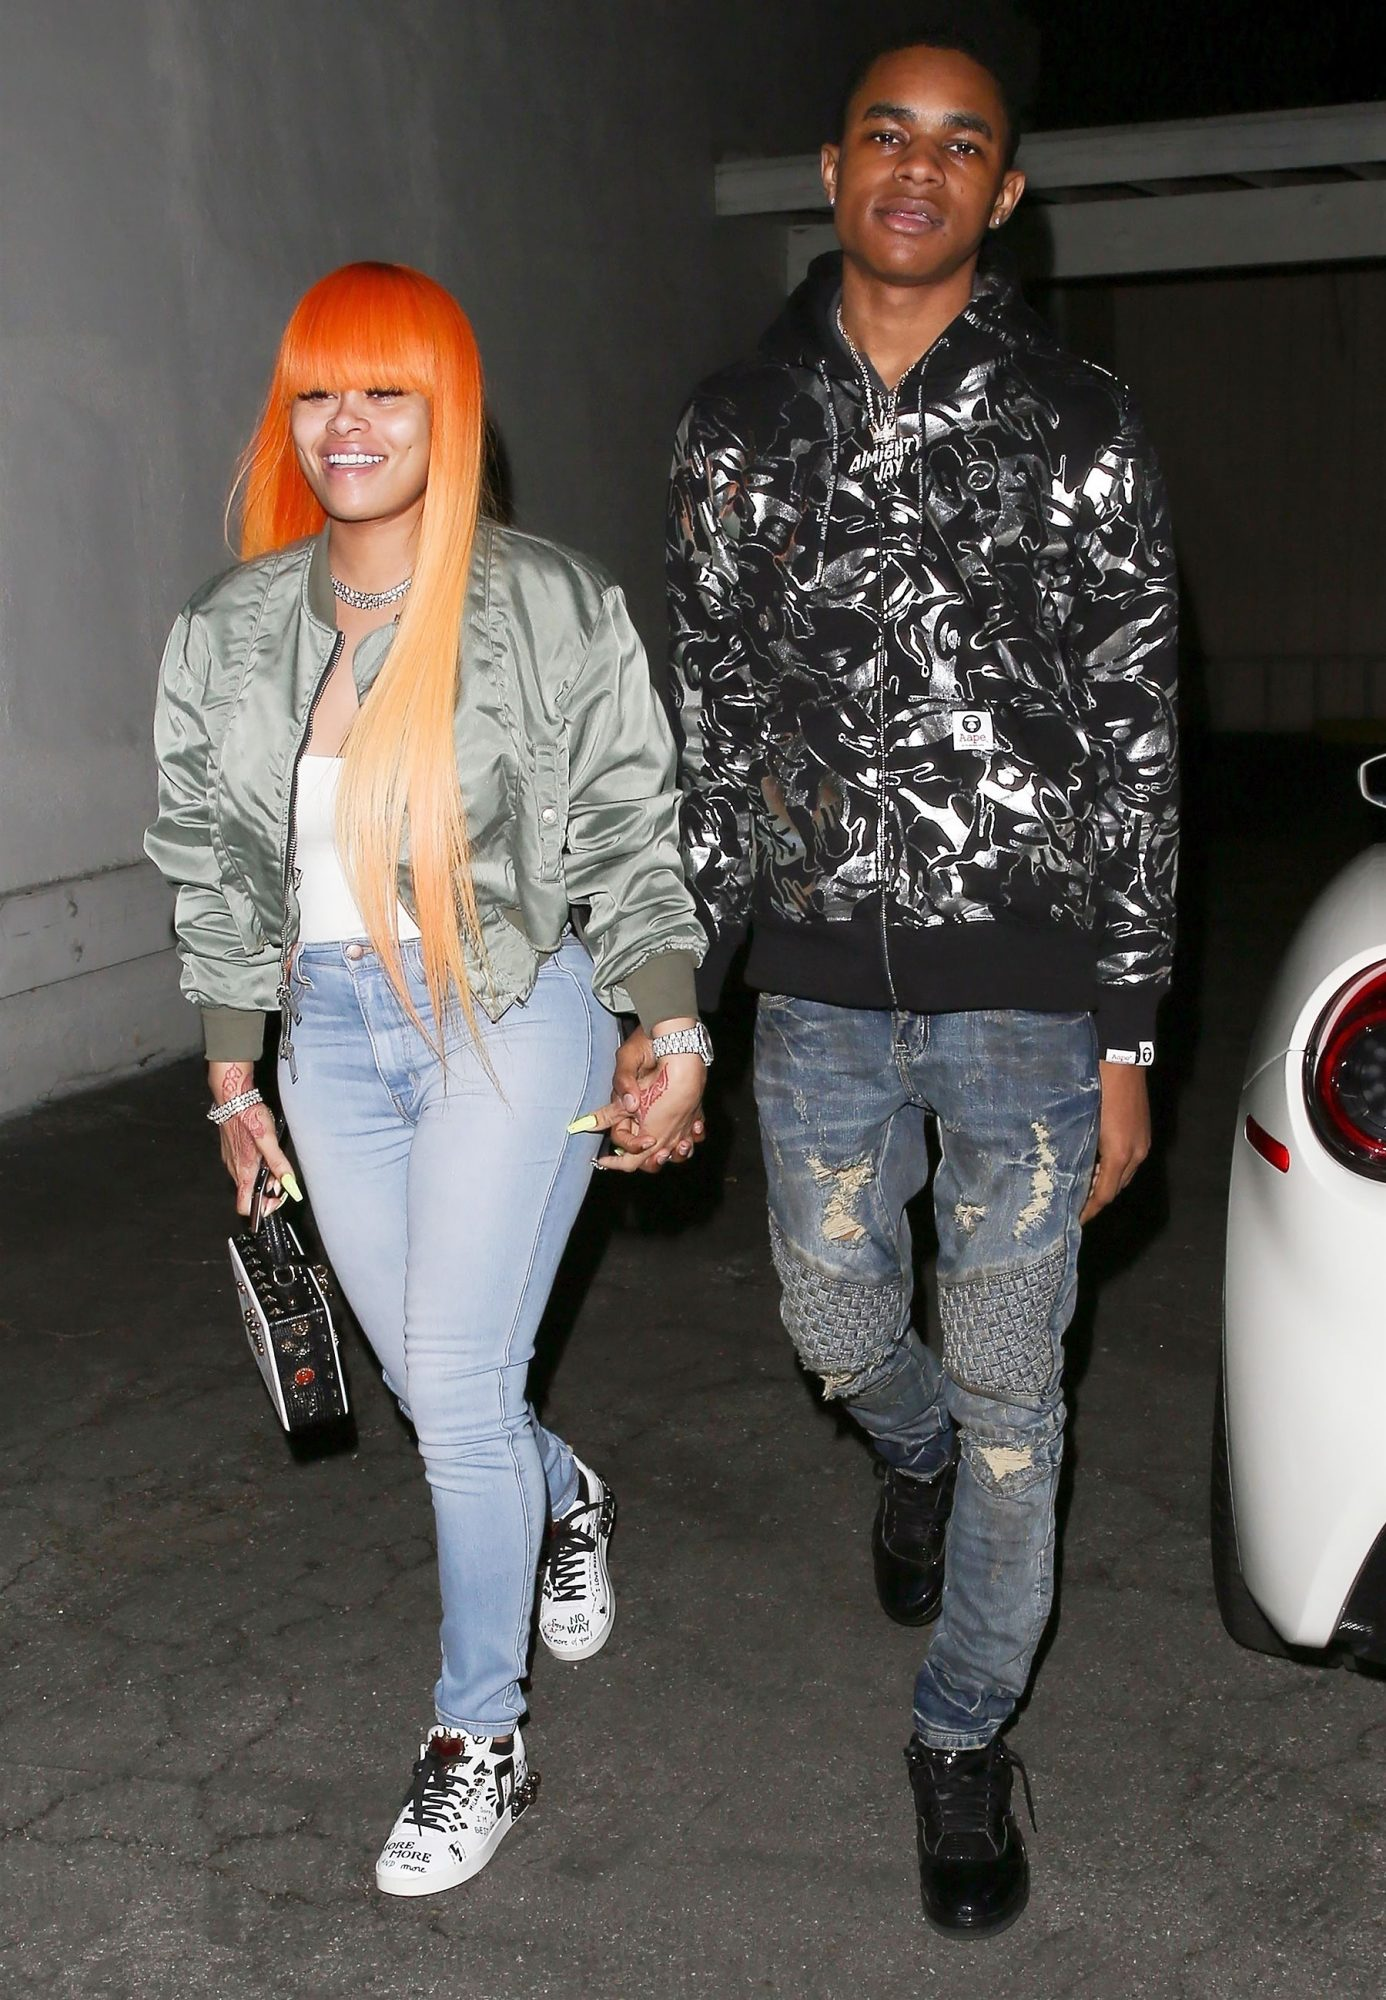 *EXCLUSIVE* Blac Chyna spotted holding hands with new boyfriend, 18 year-old rapper YBN Almighty Jay in Studio City during date night